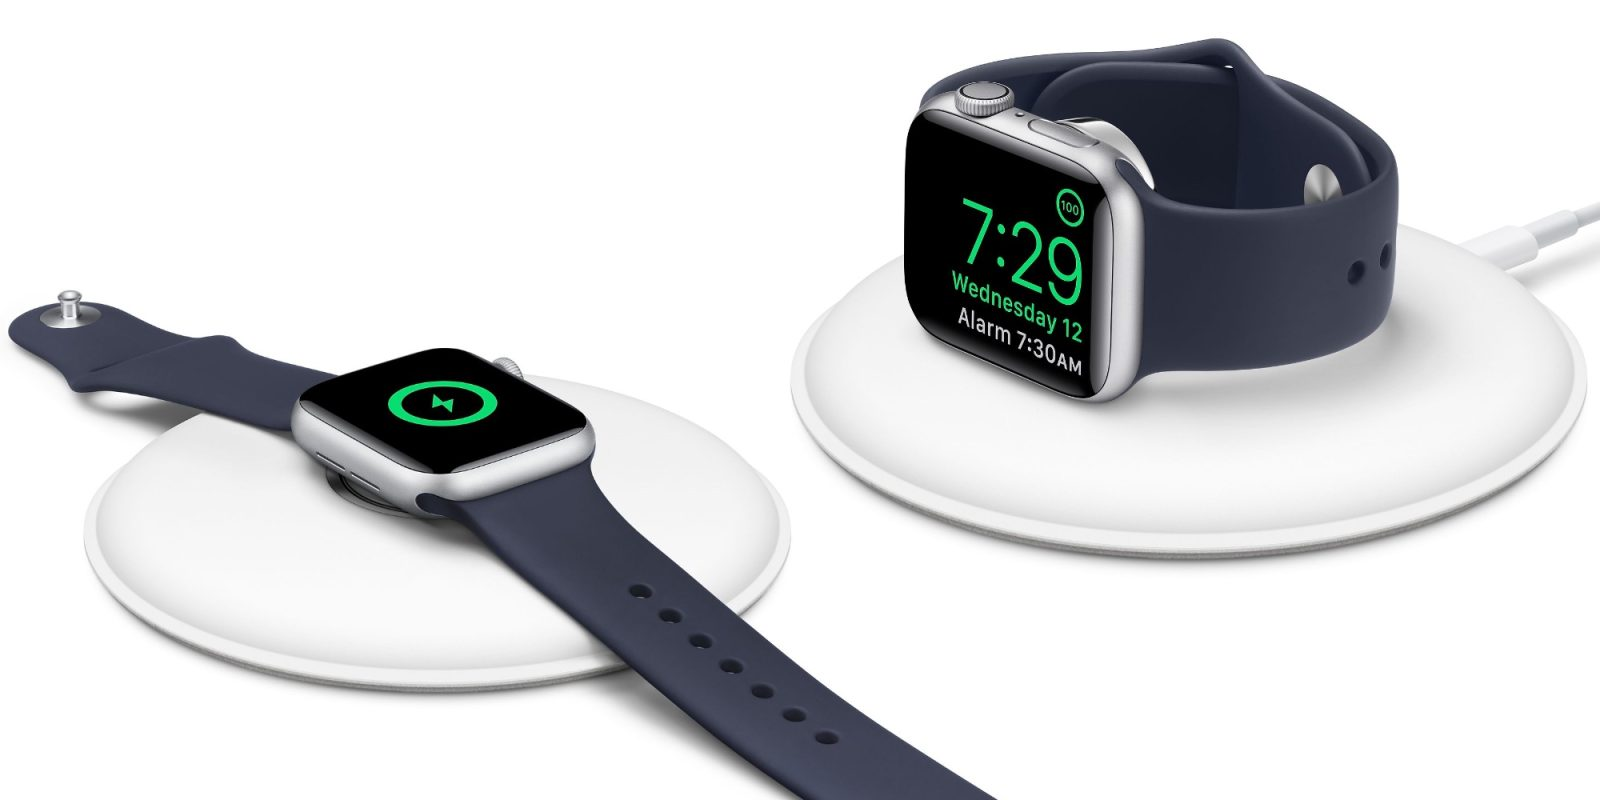 Lock in a $20 discount on the Apple Watch Magnetic Charging Dock at a 2019 low